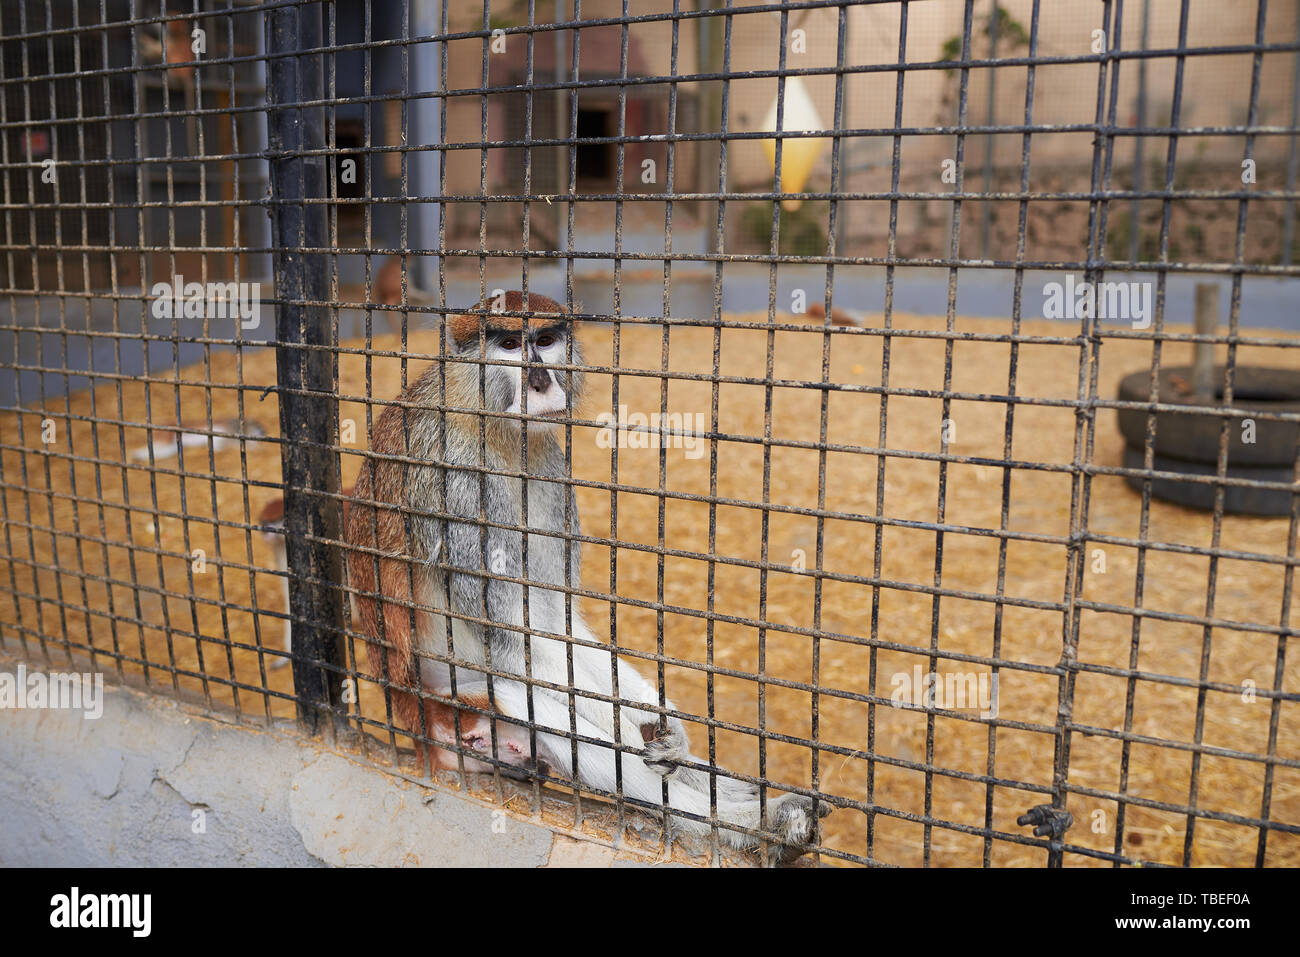 caged monkey in a zoo Stock Photo